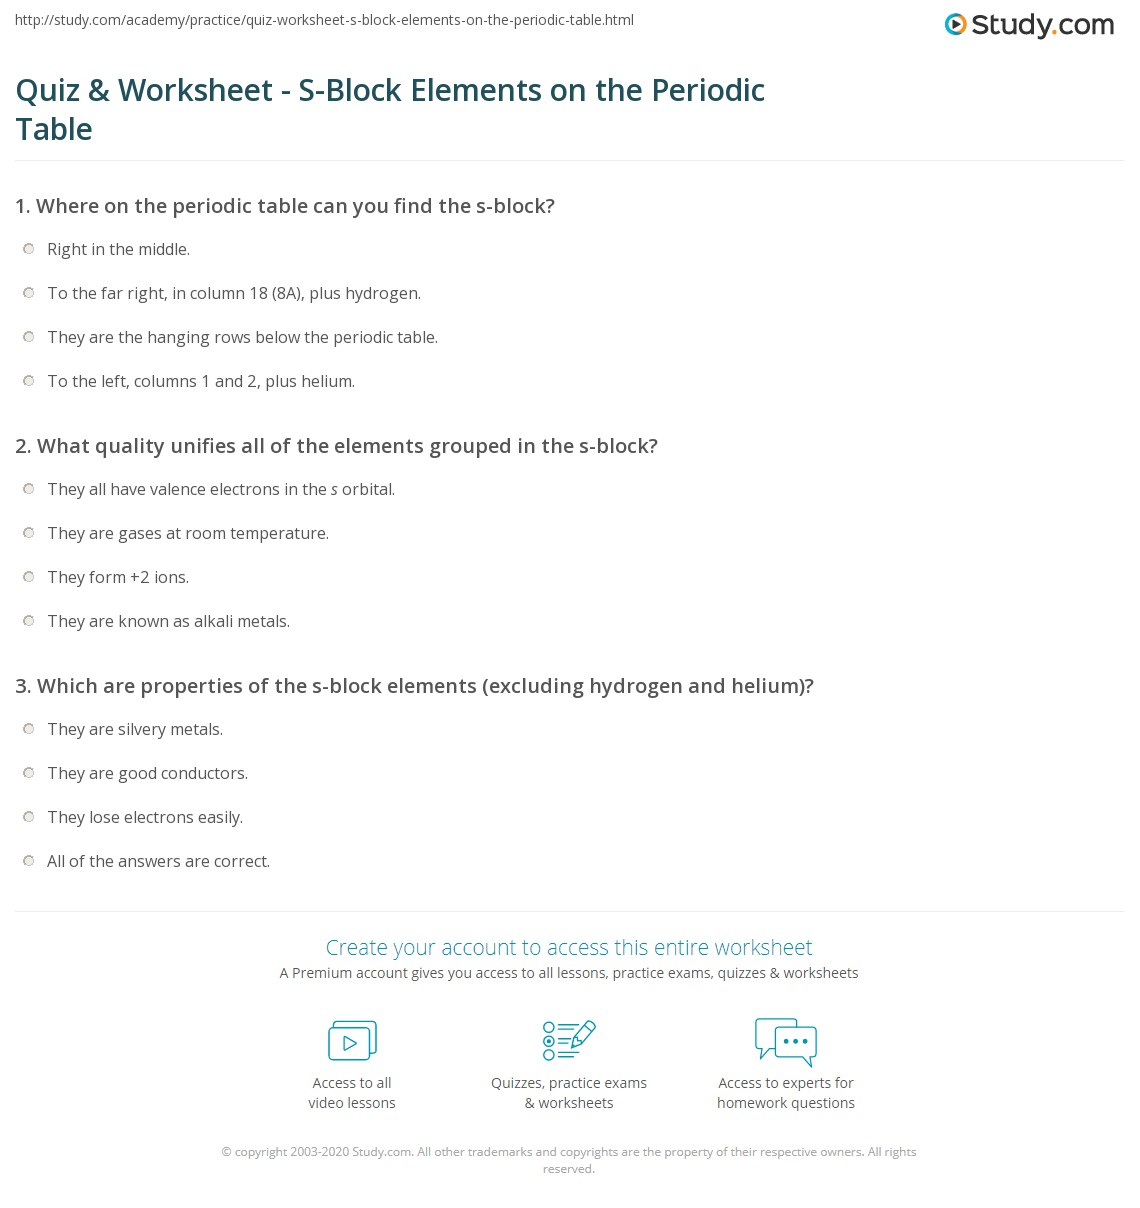 Quiz worksheet s block elements on the periodic table study print s block elements on the periodic table properties overview worksheet gamestrikefo Images